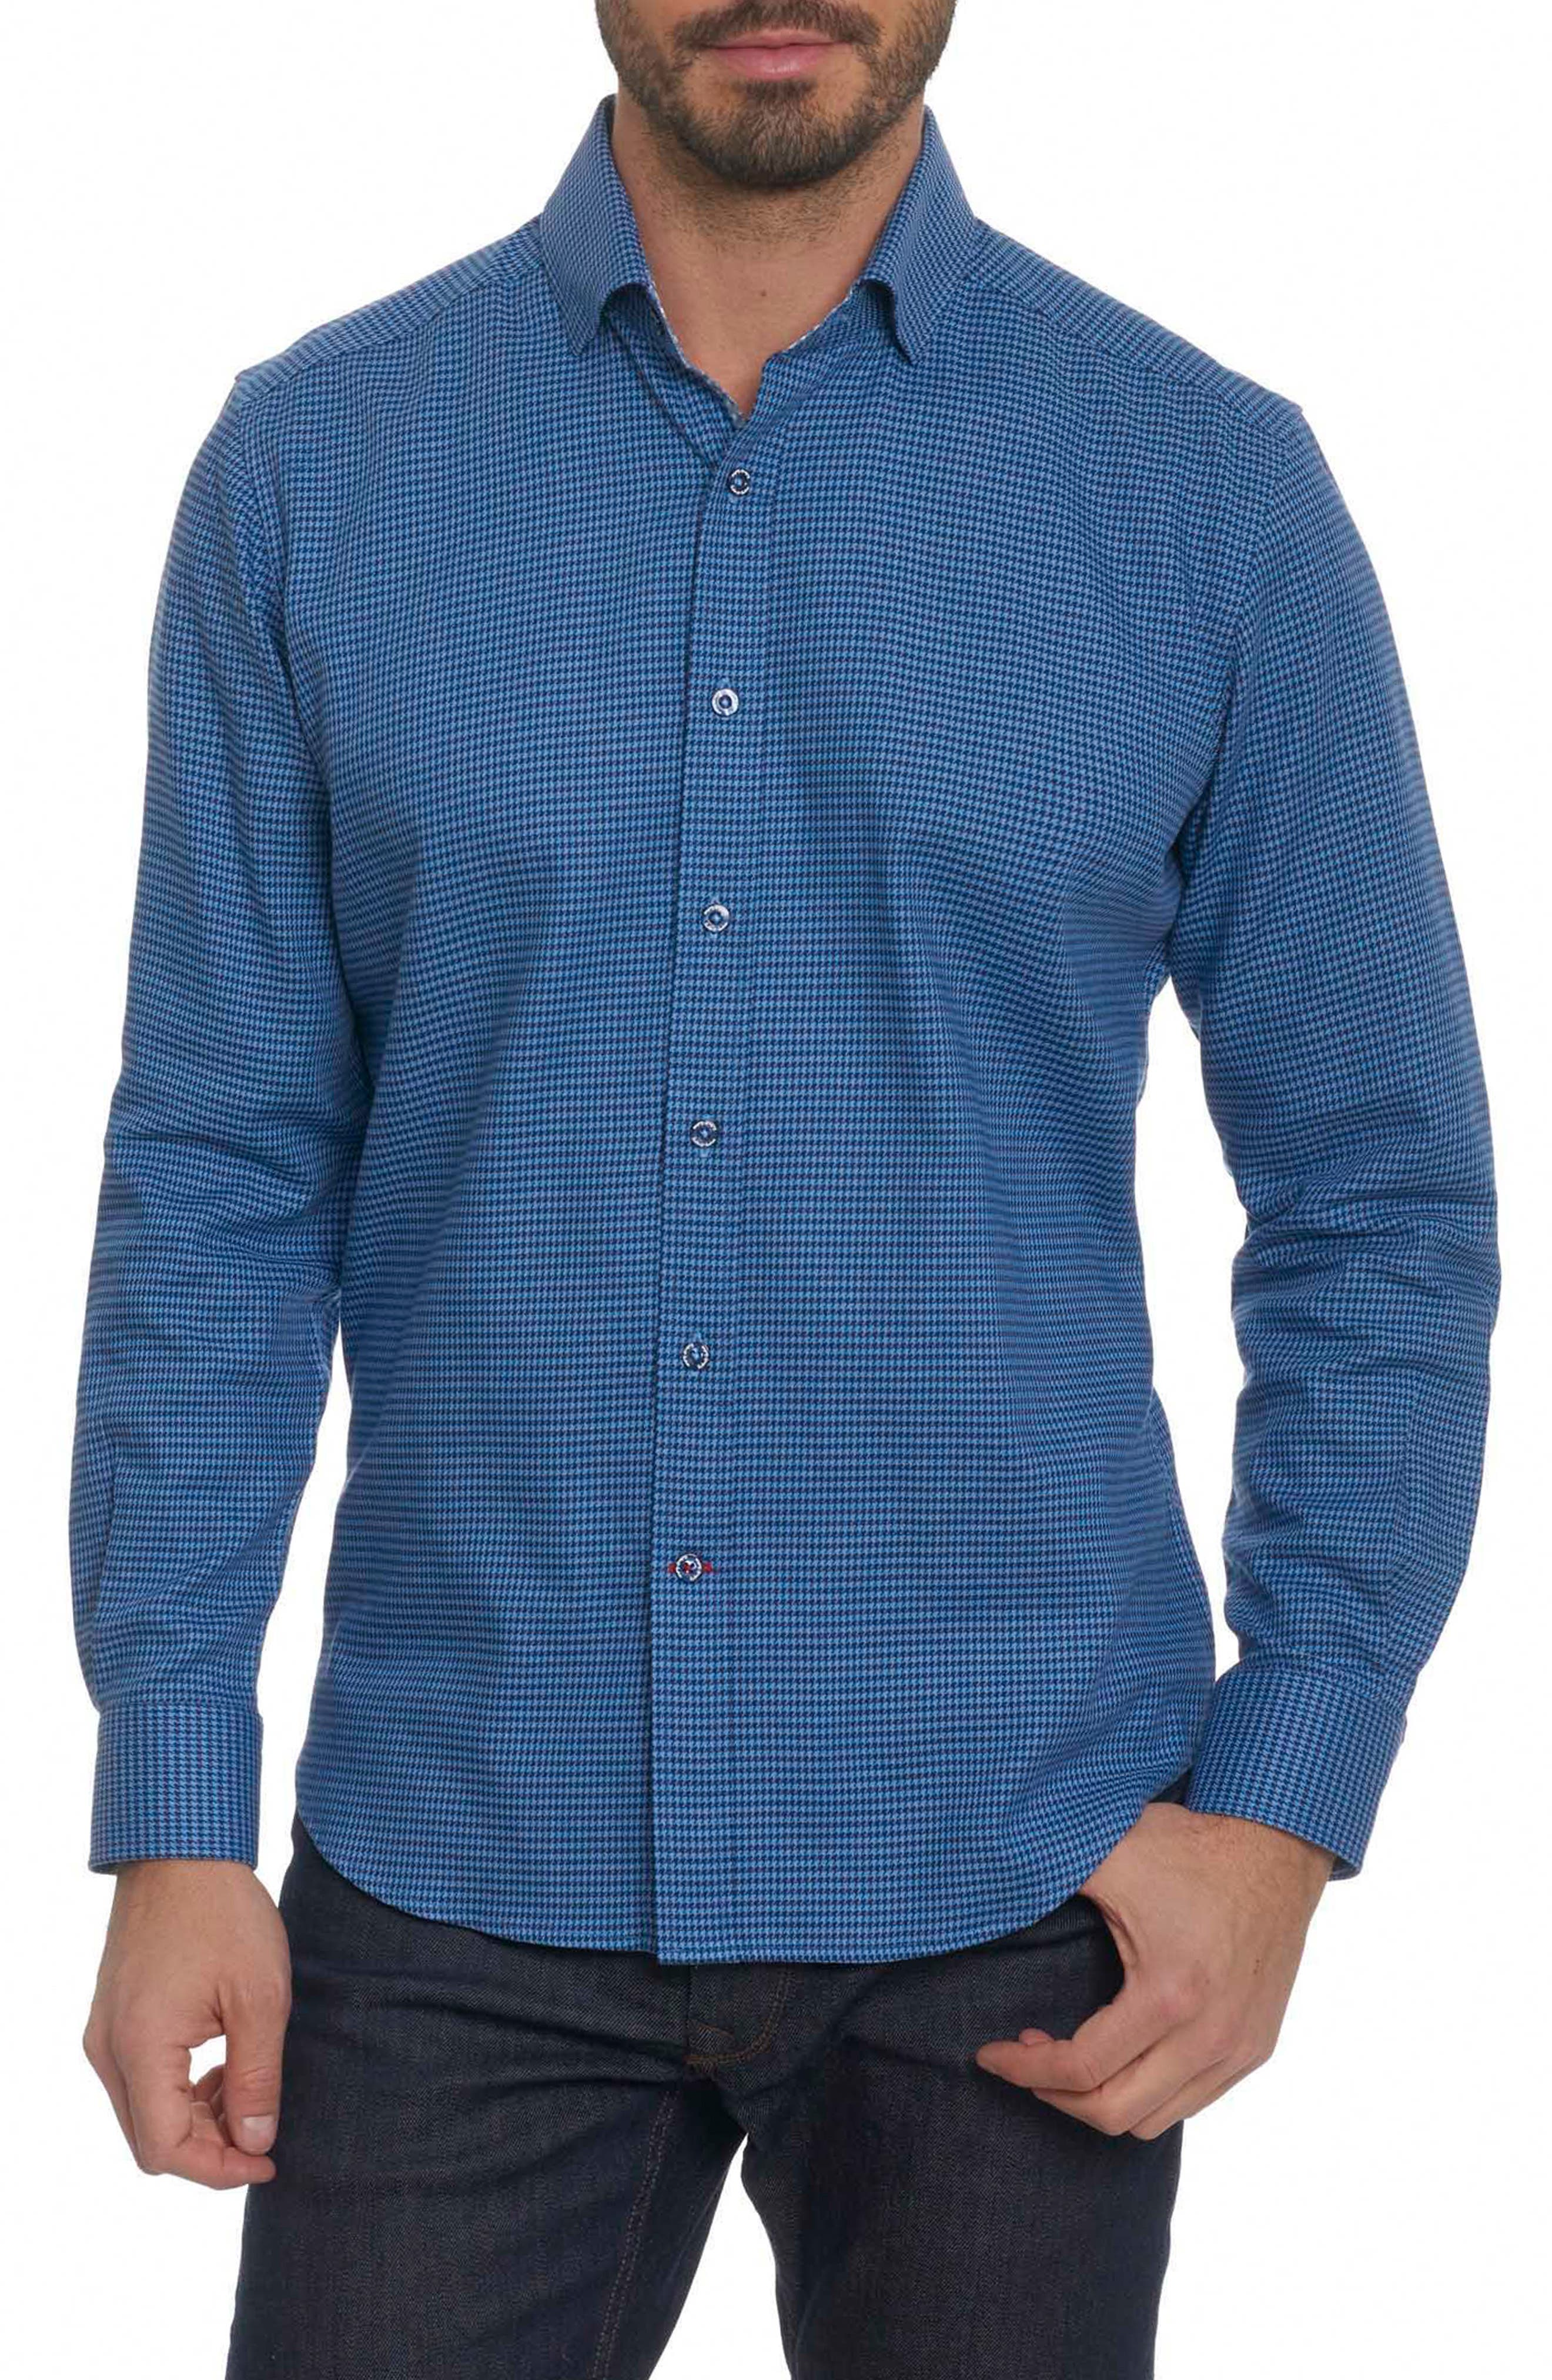 Colin Tailored Fit Sport Shirt,                             Main thumbnail 1, color,